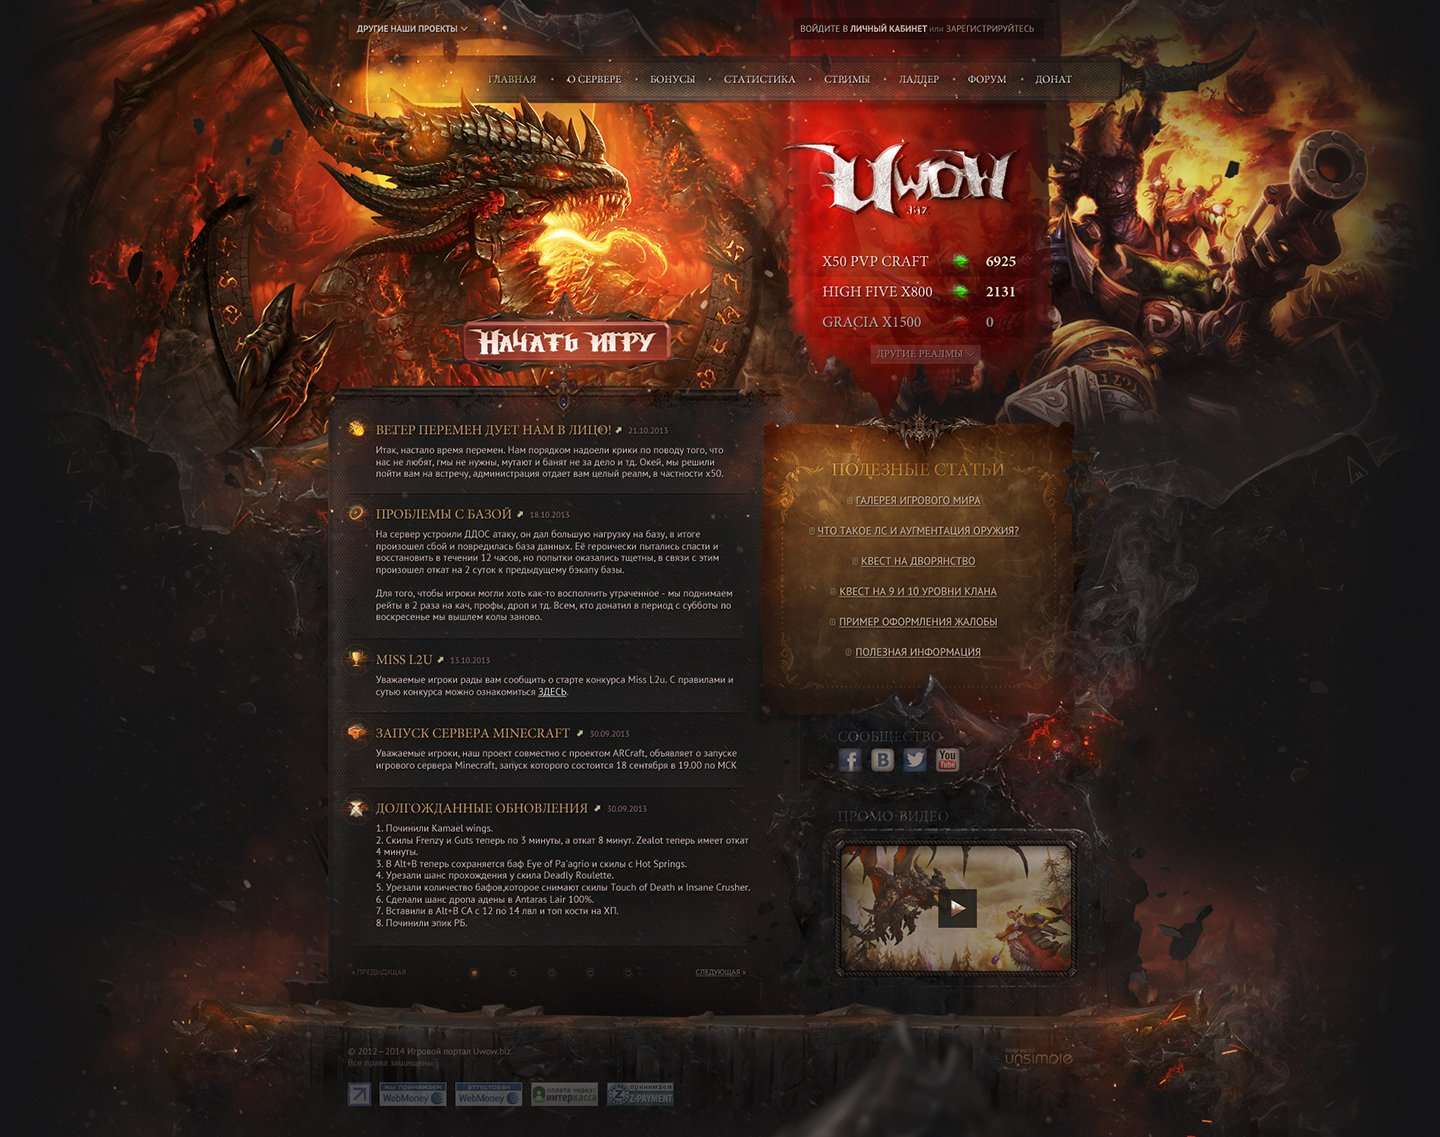 UWoW > Website design for private server World of Warcraft. Cataclysm